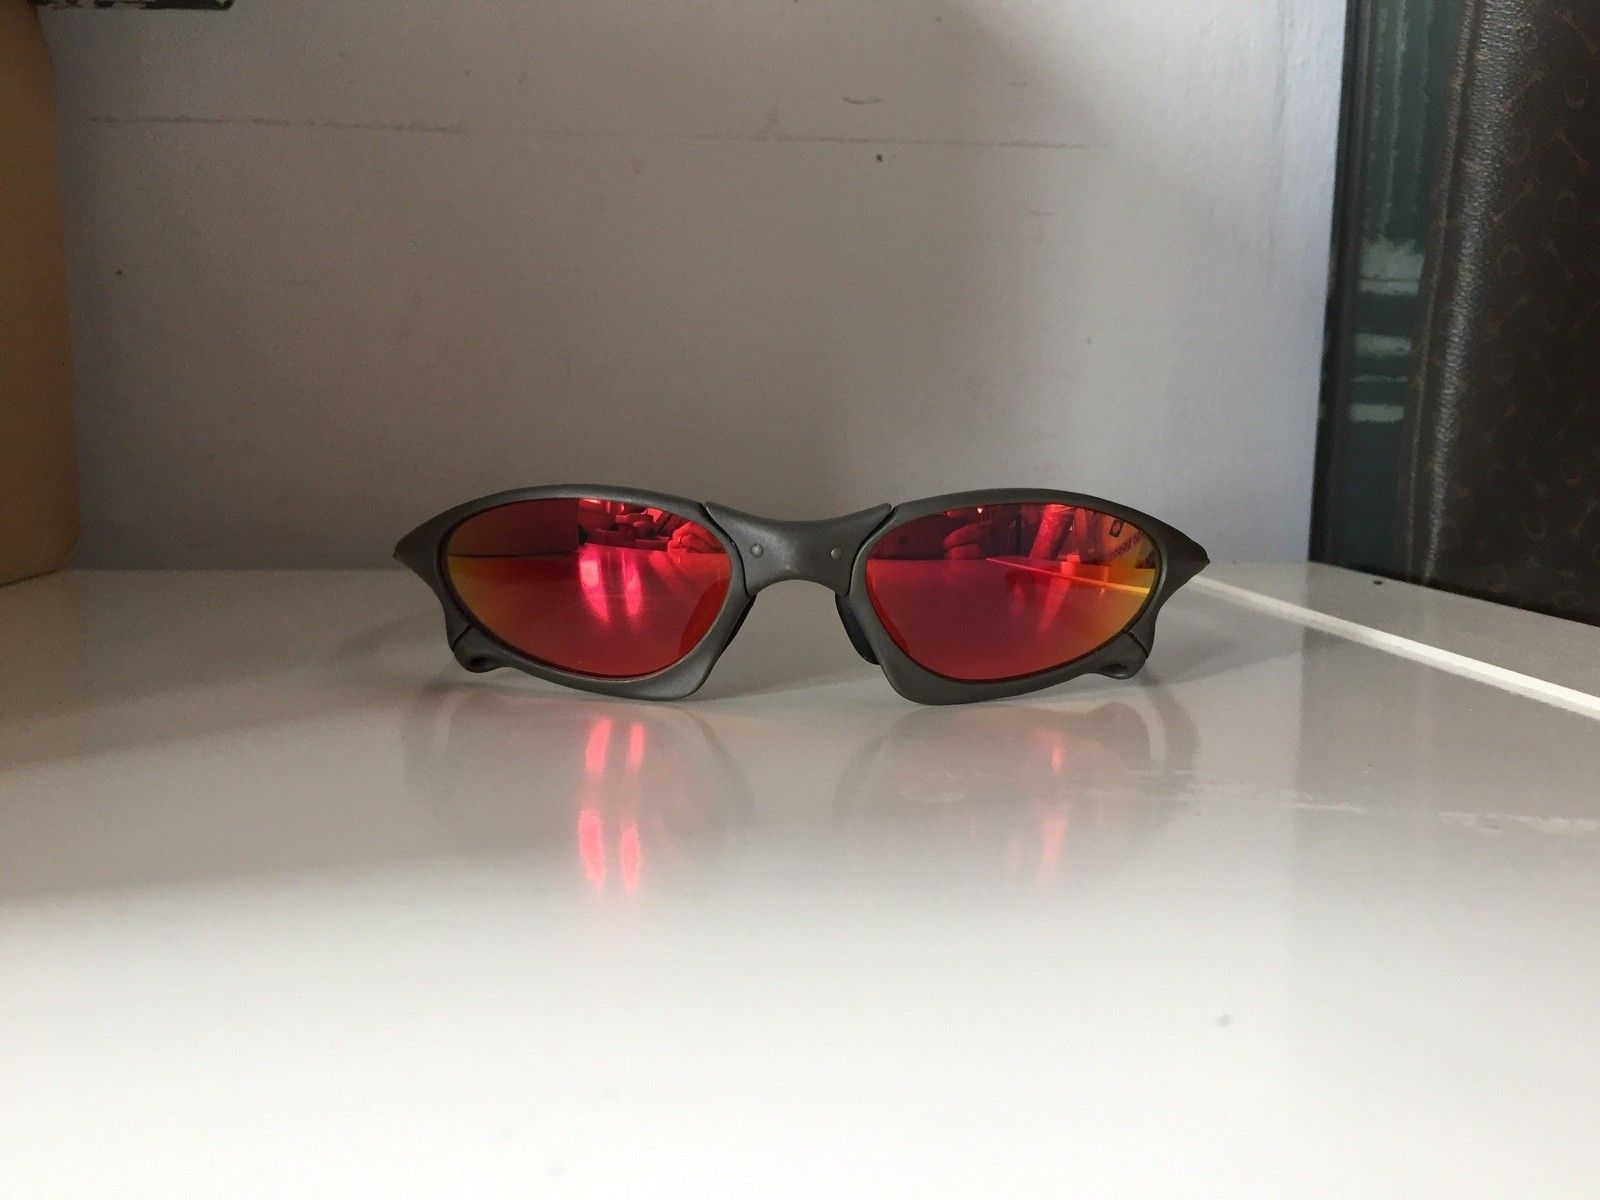 Oakley Penny Ruby! Very low serial - image.jpg